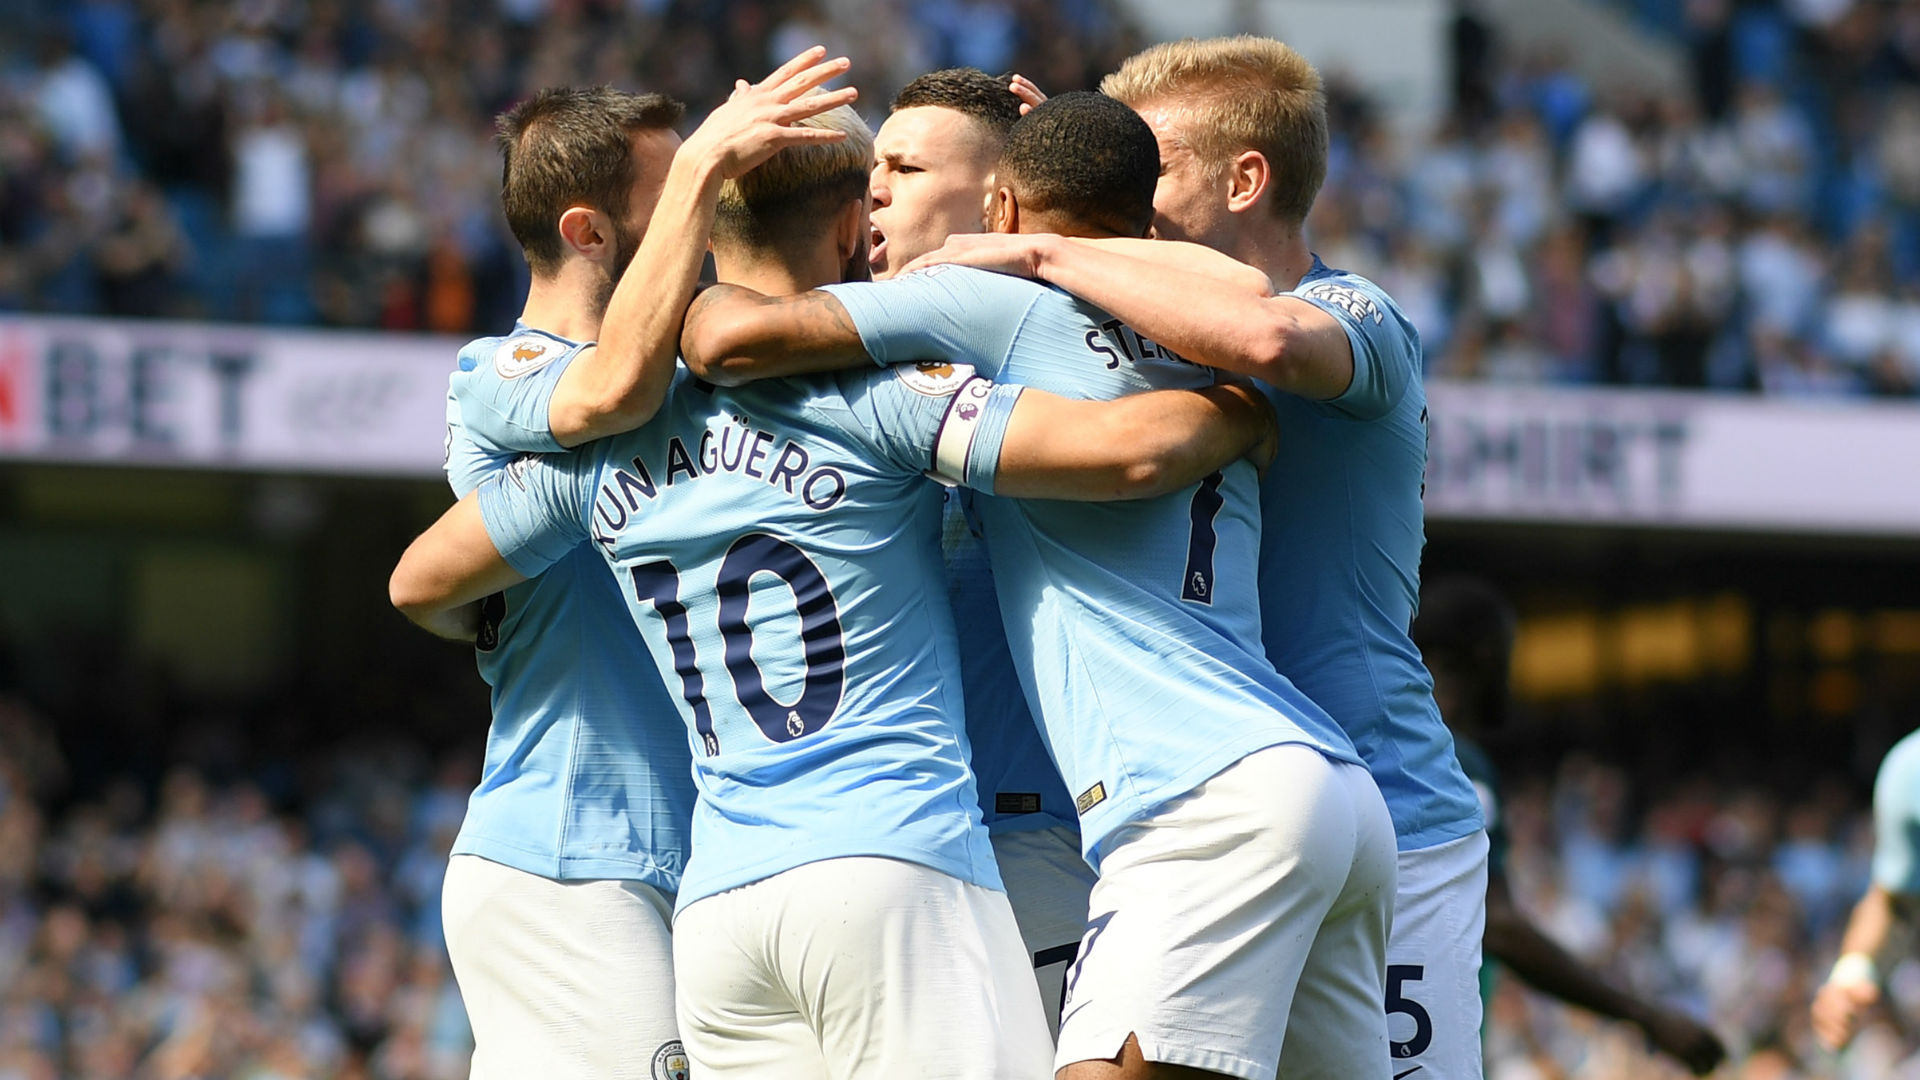 Manchester City 1 Tottenham 0: Foden nets first league goal as Spurs fail to dent champions' title defence